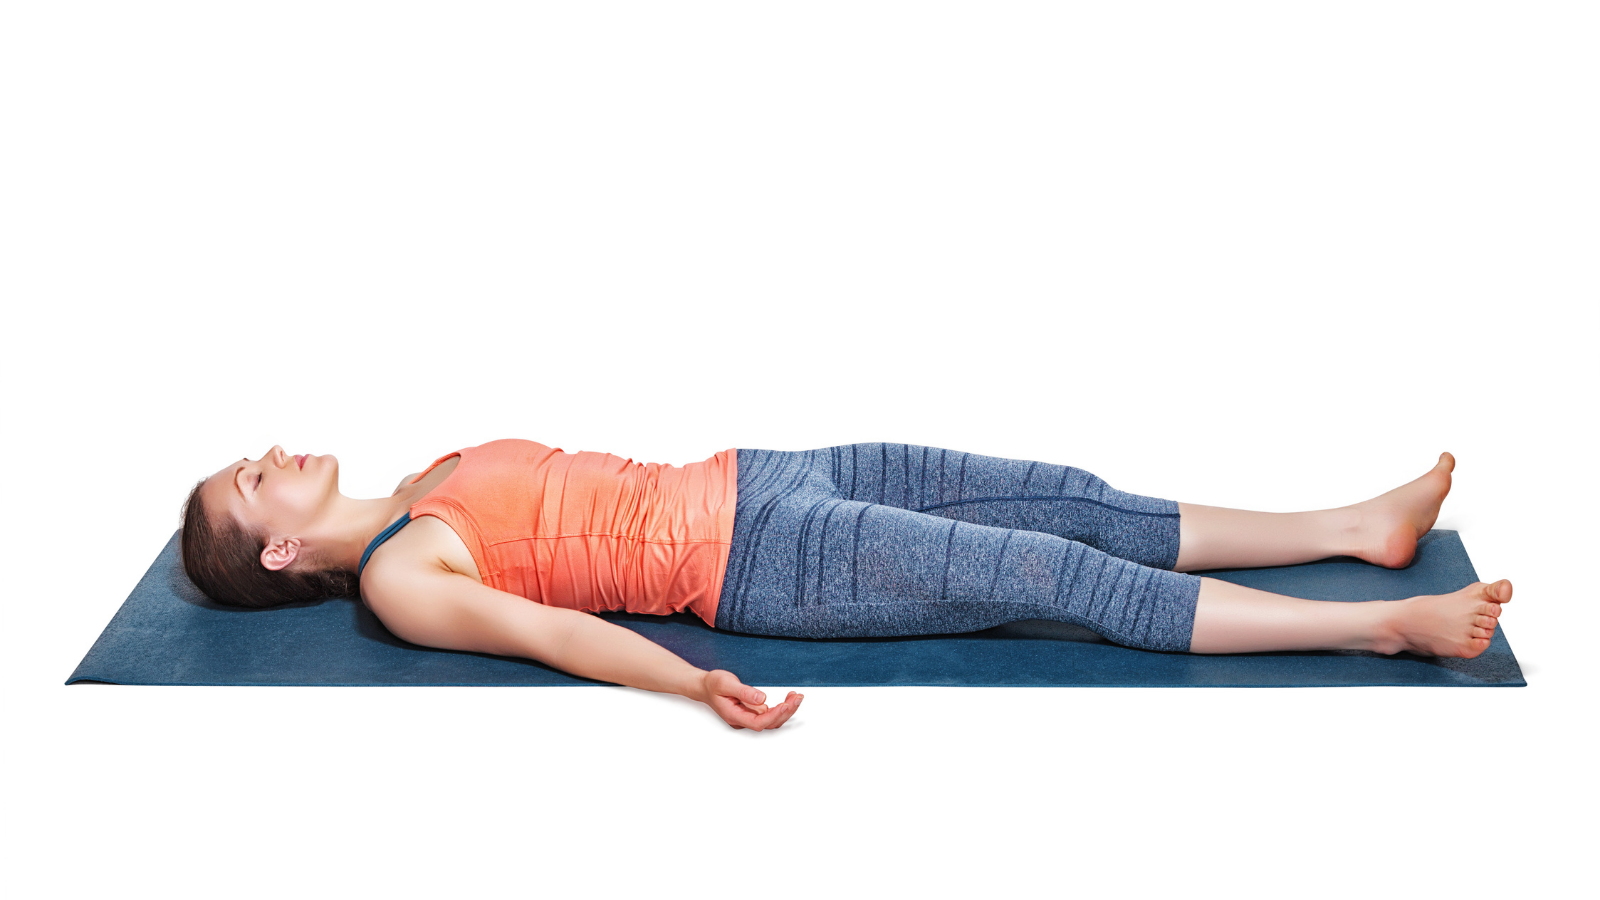 sporty fit woman relaxes in yoga's Savasana or Corpse Pose in studio